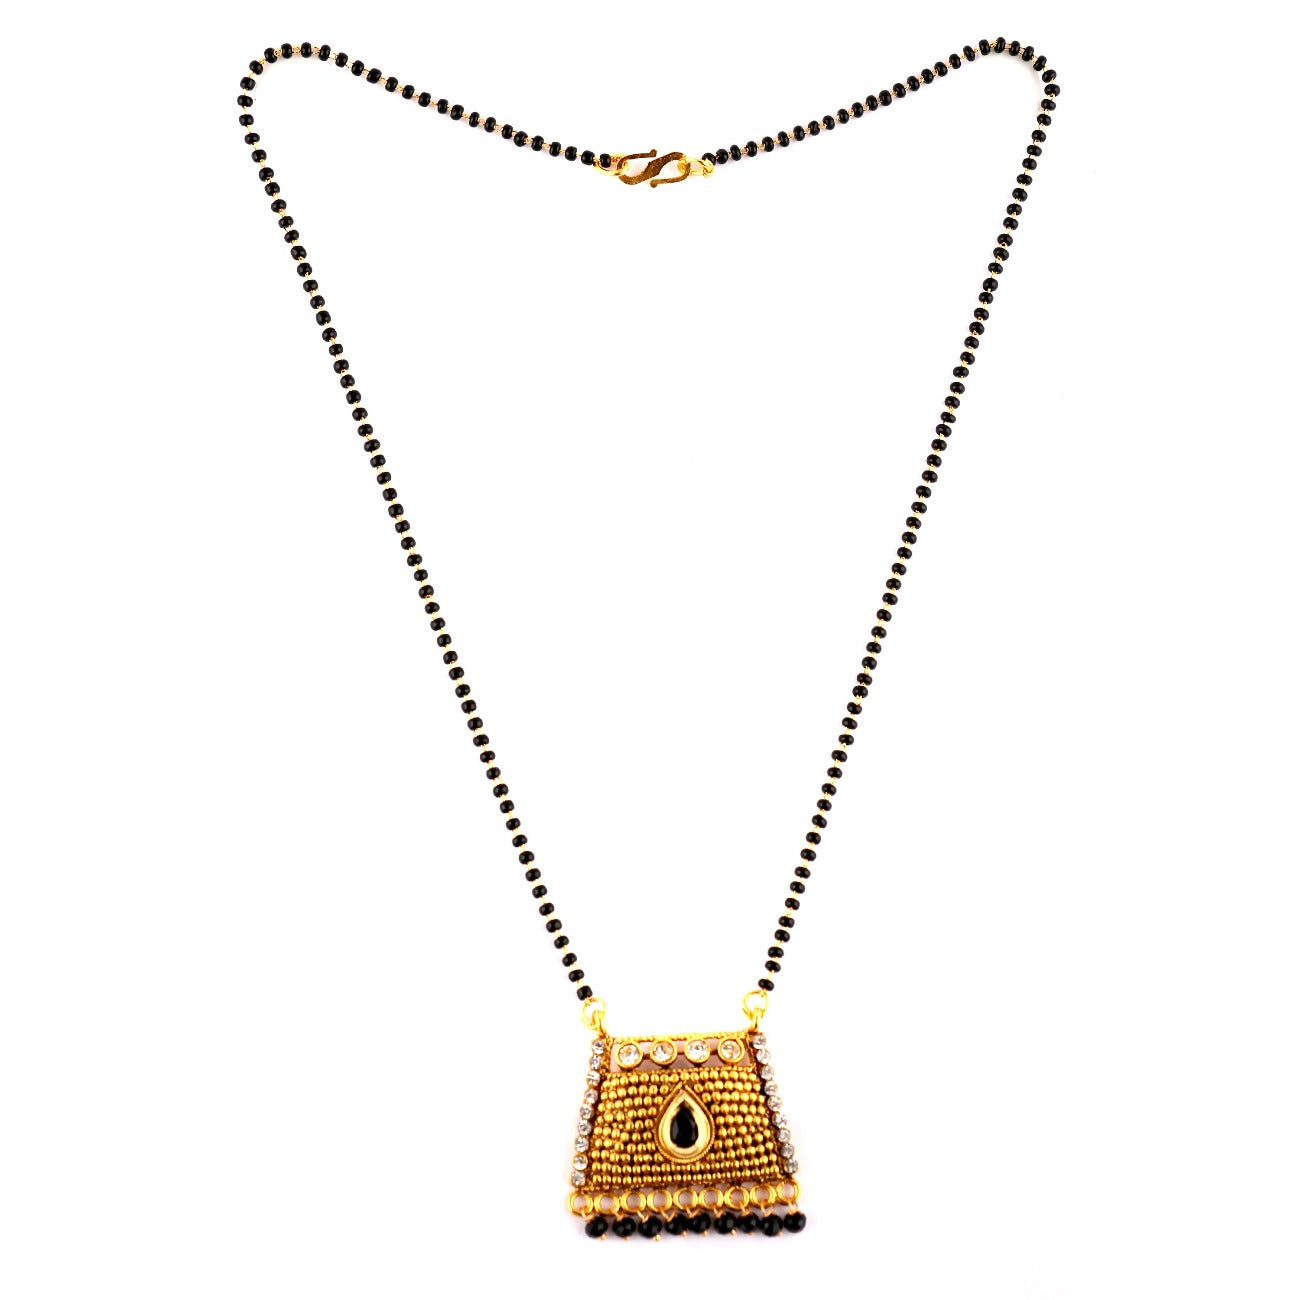 Beautiful Designer  Golden Mangalsutra  with Black and White Cz Crystal Stone and Golden pearls Pendant